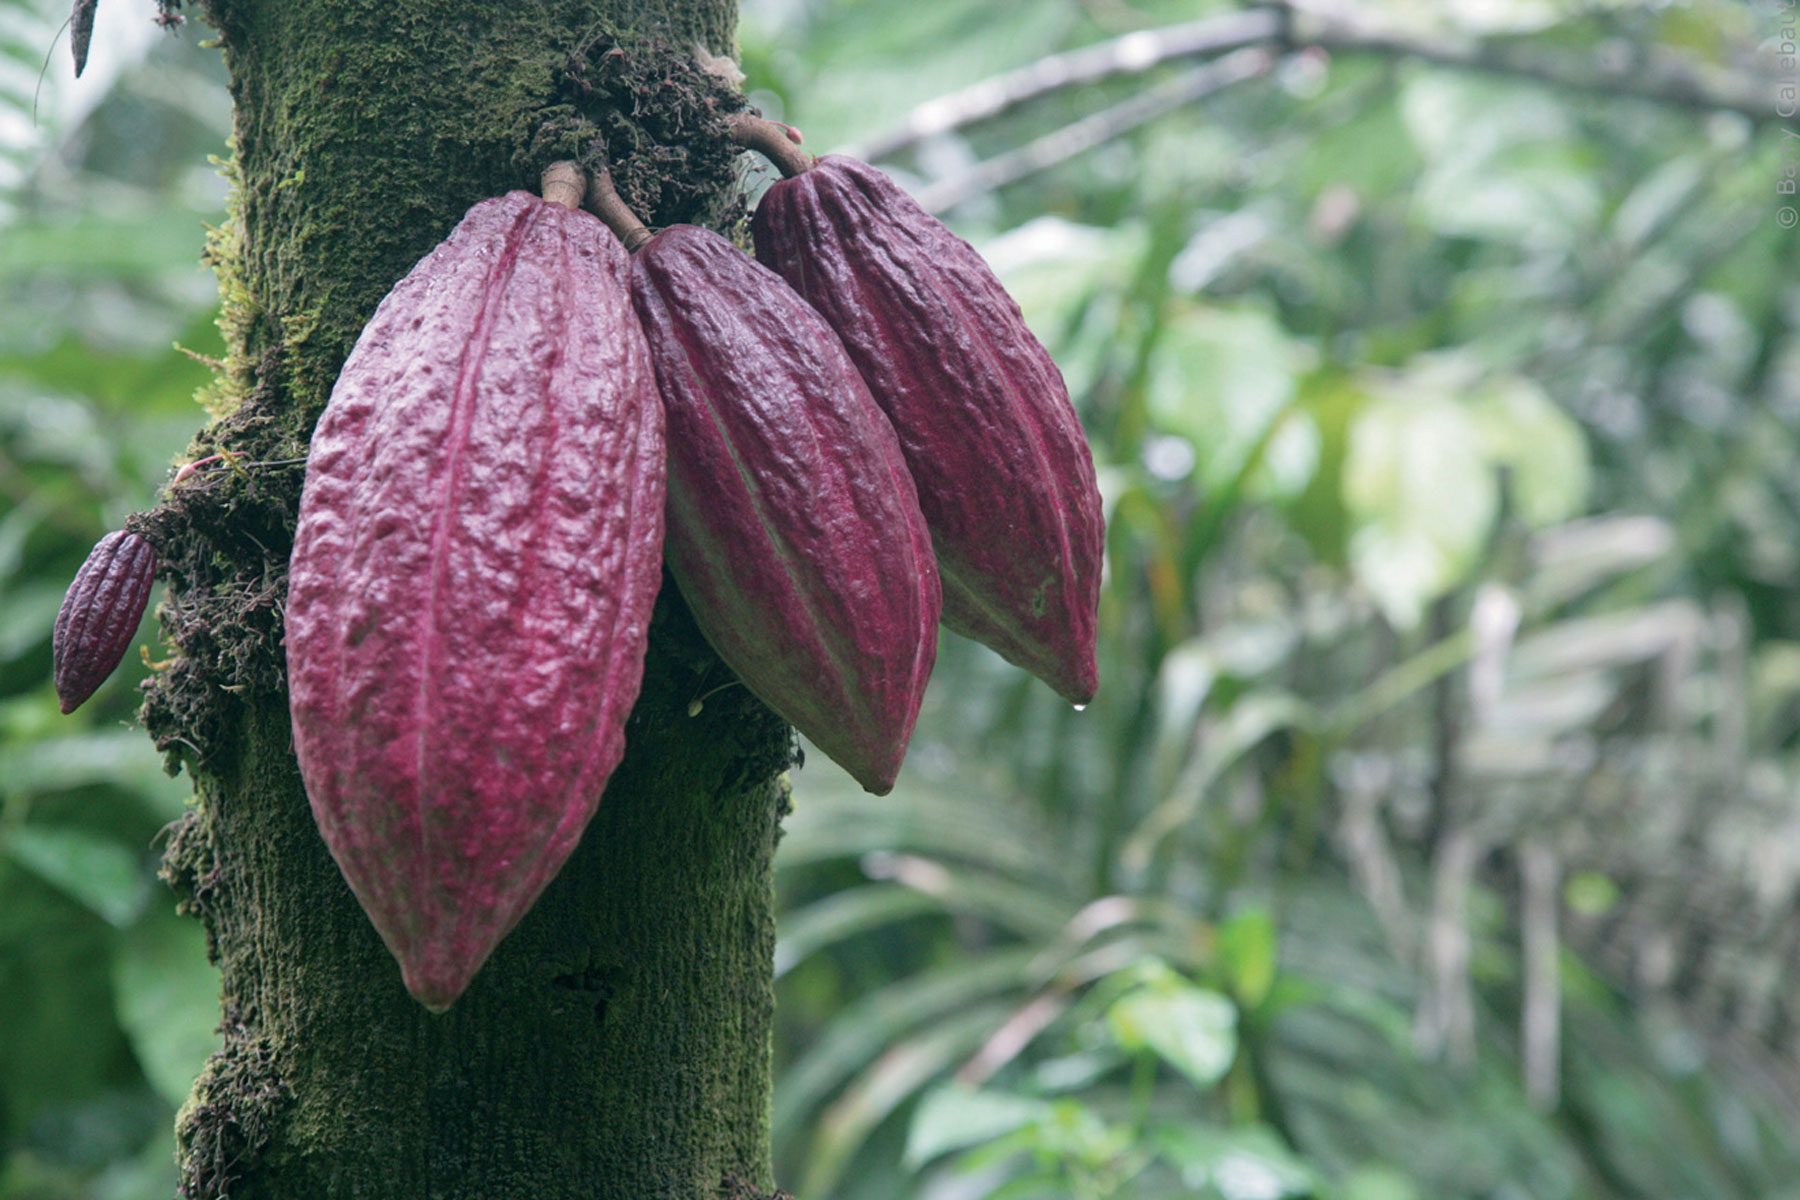 Naturally growing ruby cocoa beans.